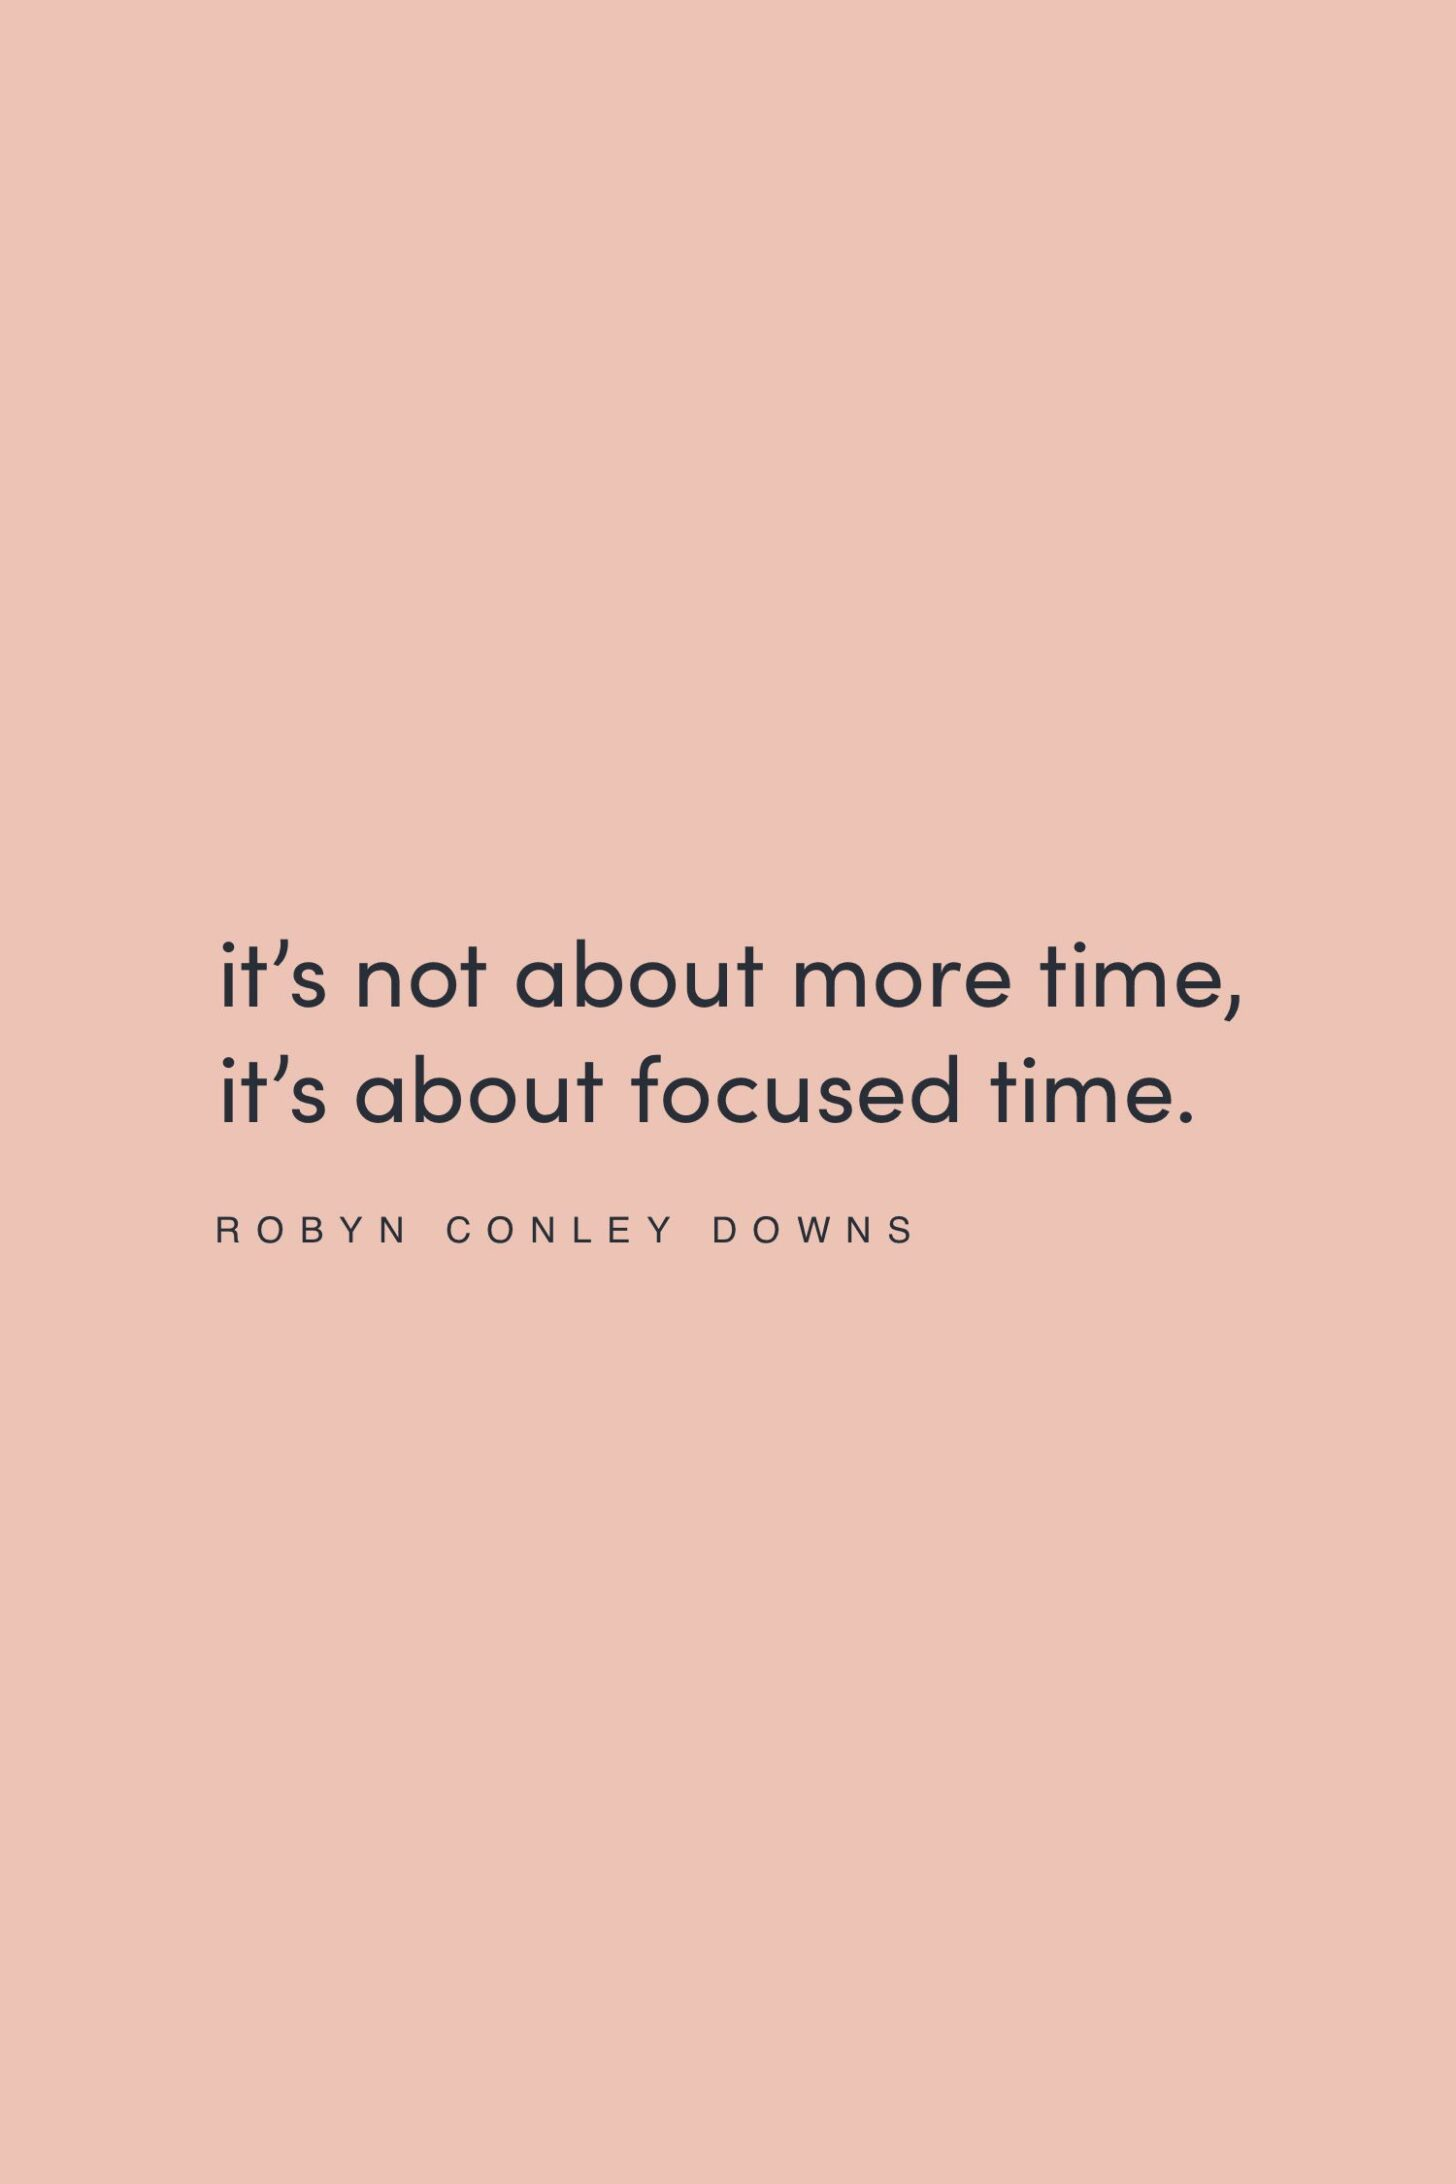 Quote on focused time by Robyn Conley Downs on the Feel Good Effect Podcast #realfoodwholelife #feelgoodeffectpodct #positivityquote #inspirationalquote #motivatioanlquote #productivityquote #timemanagement